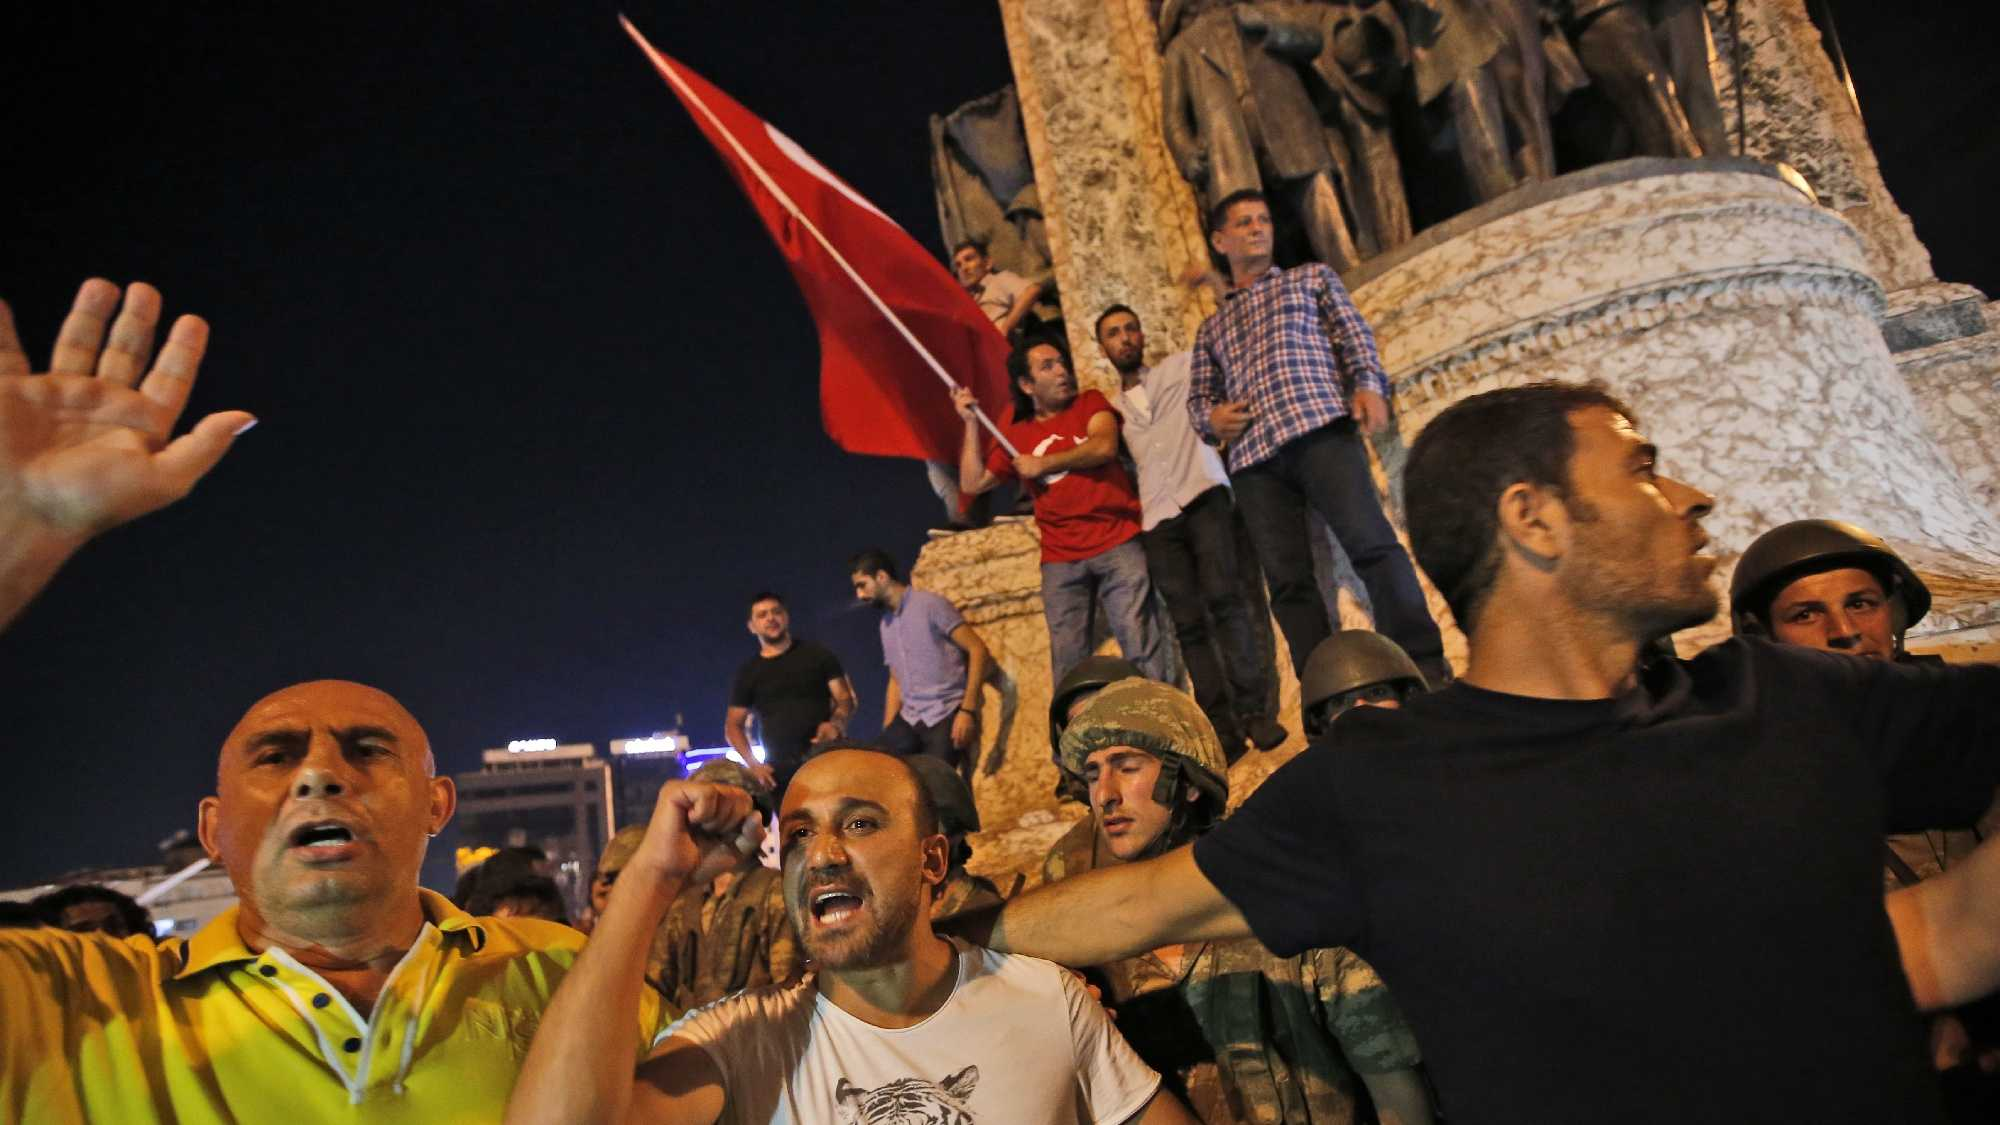 Supporters of Turkey's President Recep Tayyip Erdogan, protest in front of soldiers in Istanbul's Taksim square, early Saturday. Turkey's prime minister says a group within Turkey's military has engaged in what appeared to be an attempted coup.